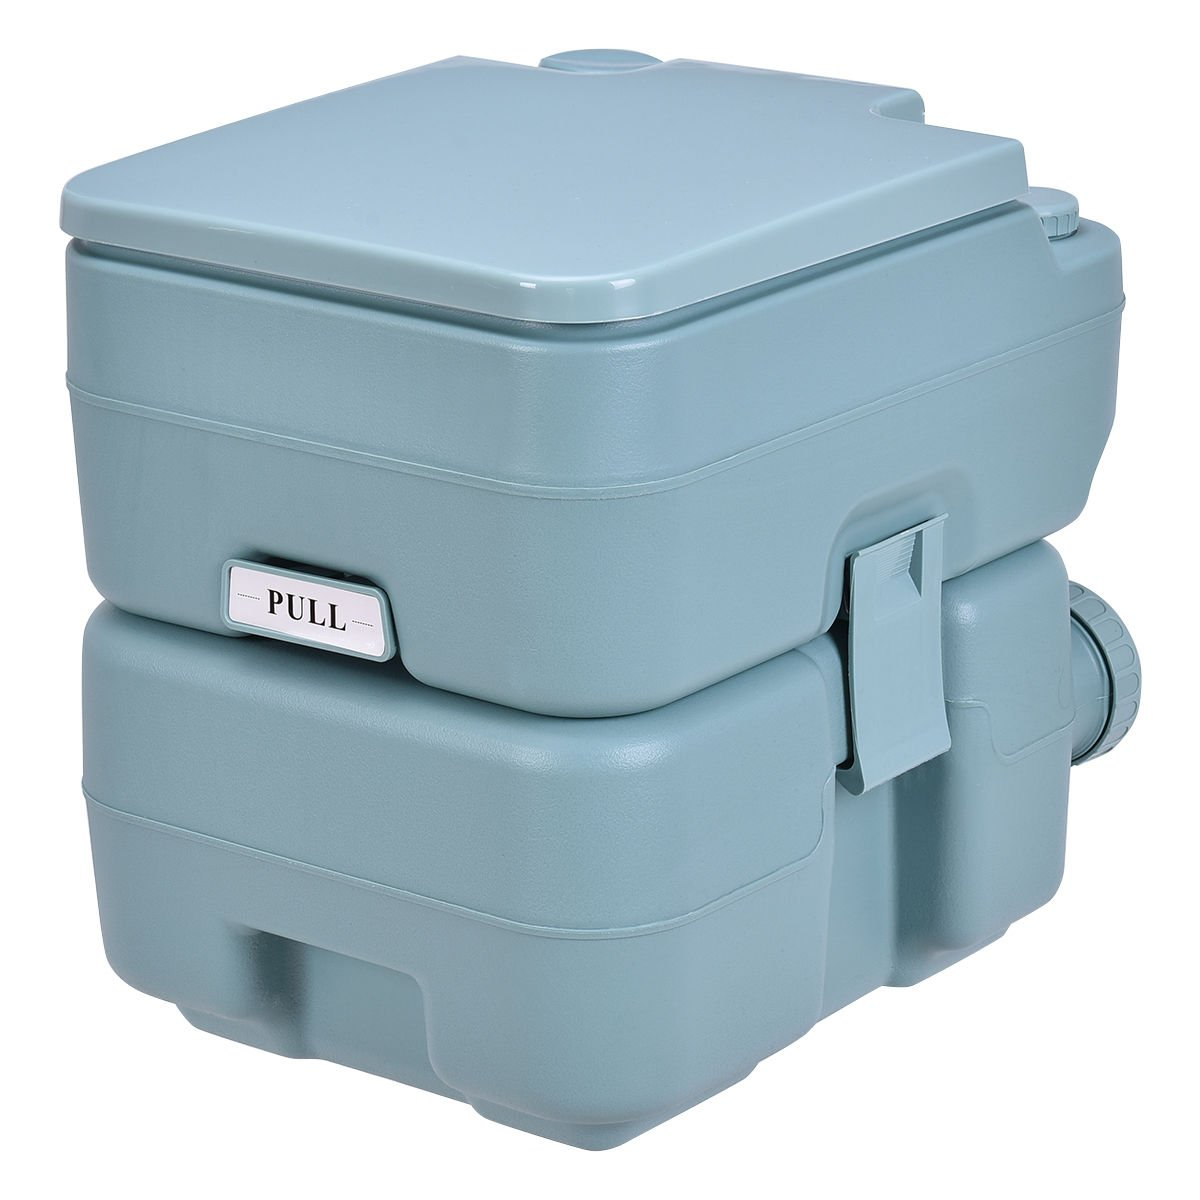 20L Easy Carry & Clean Portable Travel Flush Toilet Greenish Gray Potty by FDInspiration (Image #7)